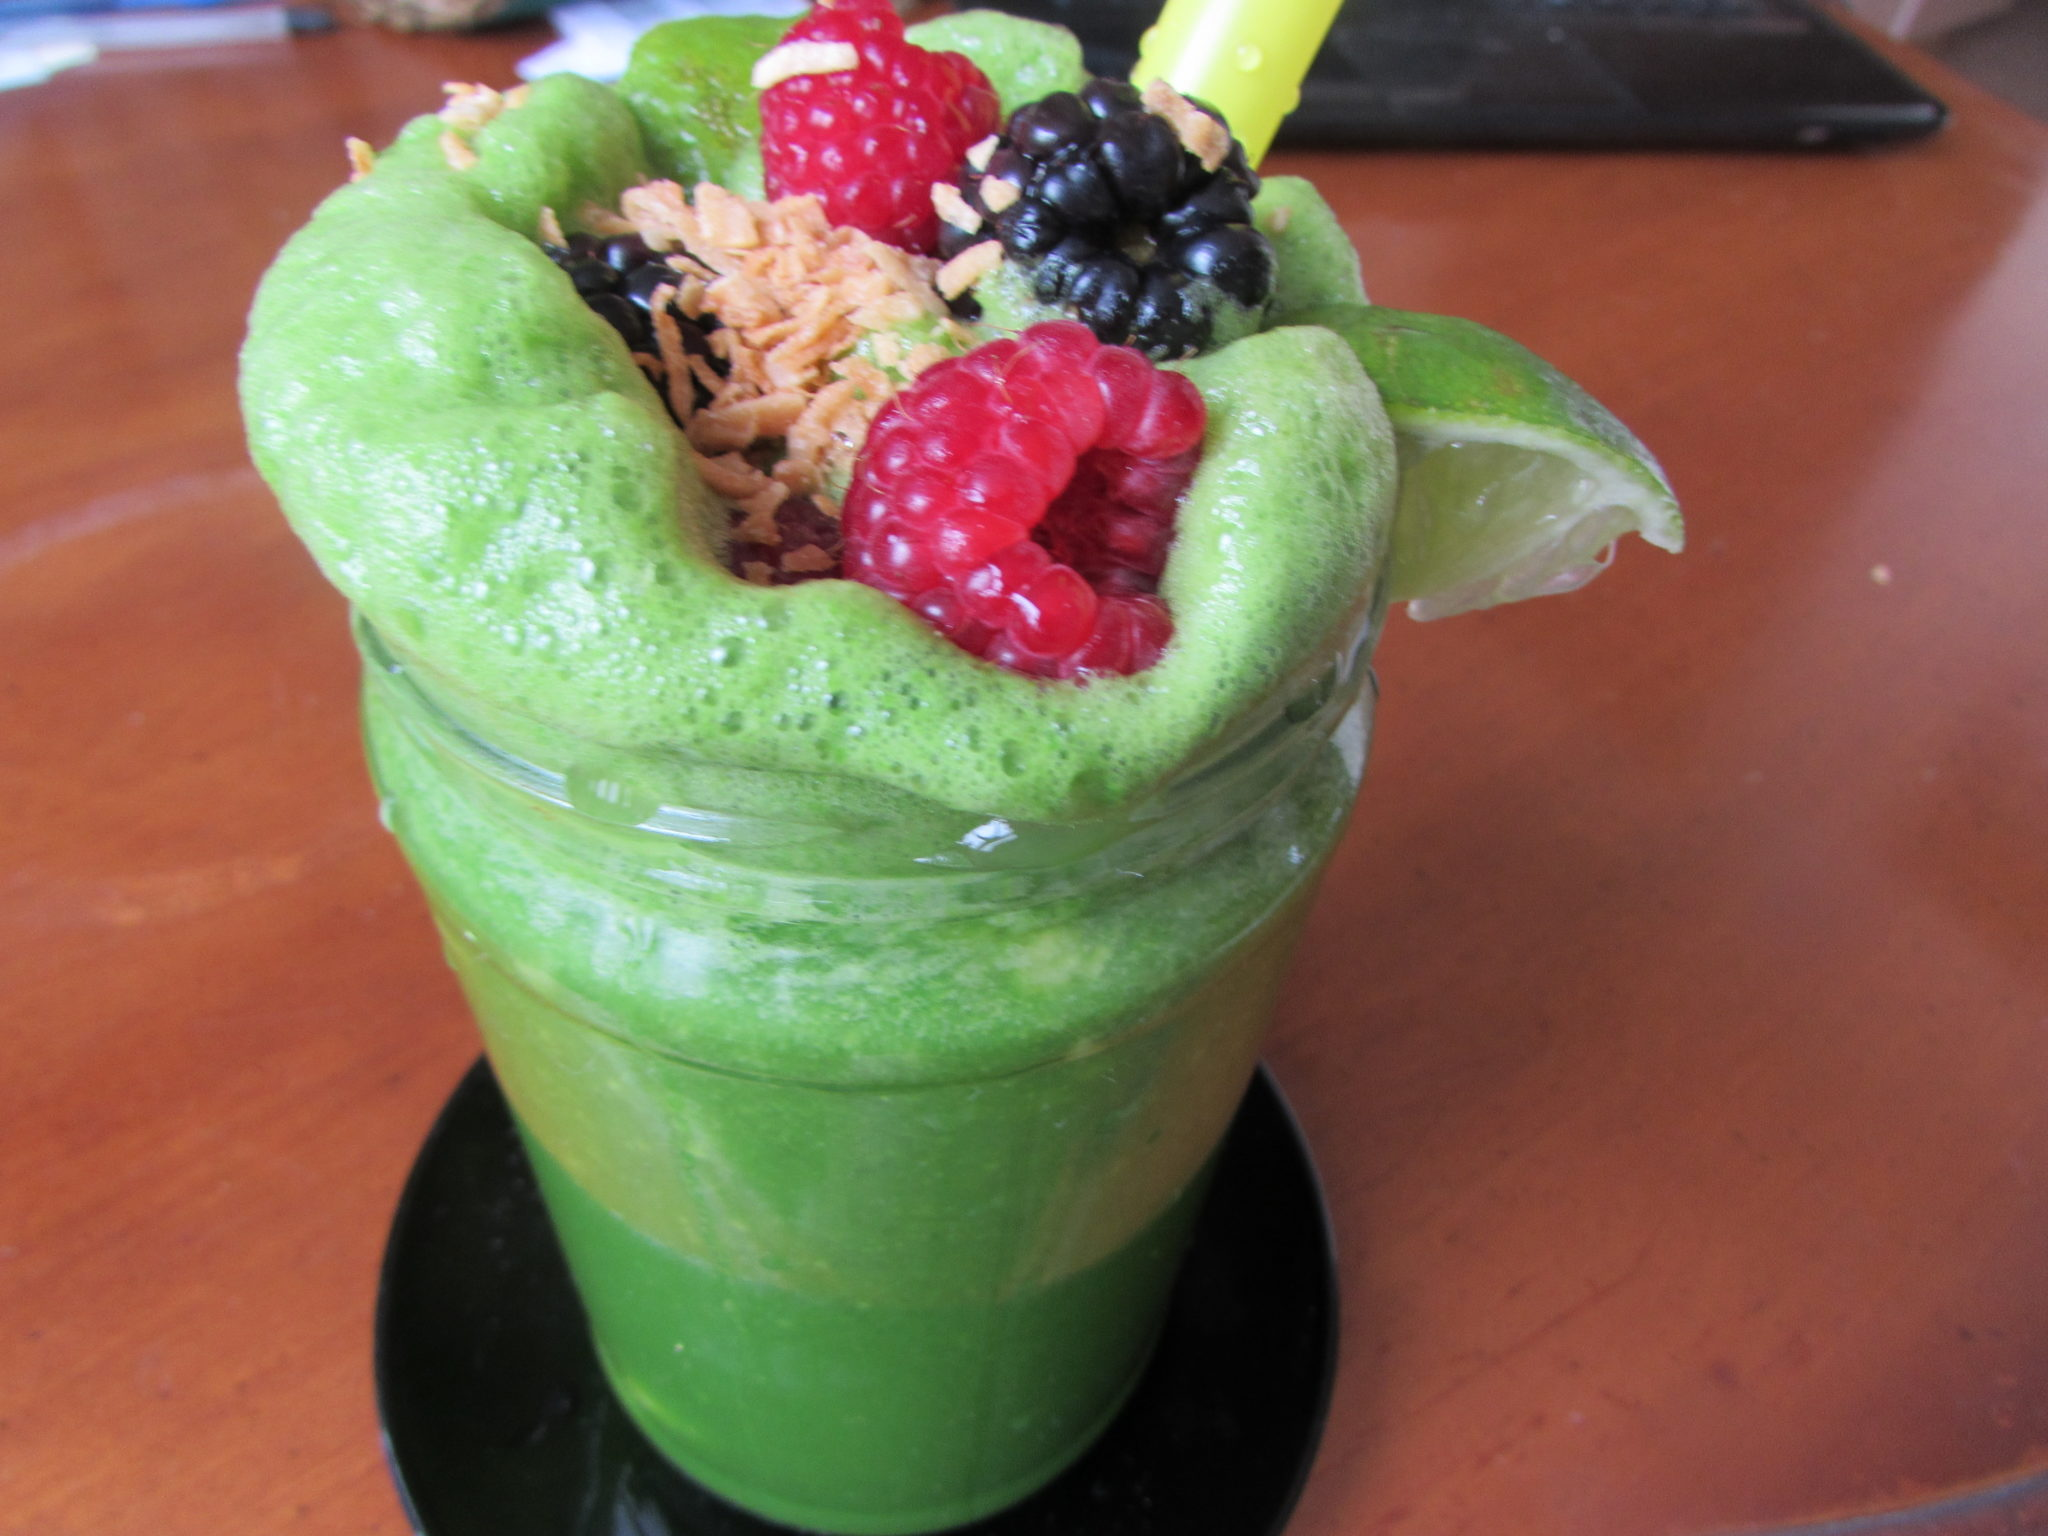 ENERGIZING FRESH JUICED GREEN DRINK